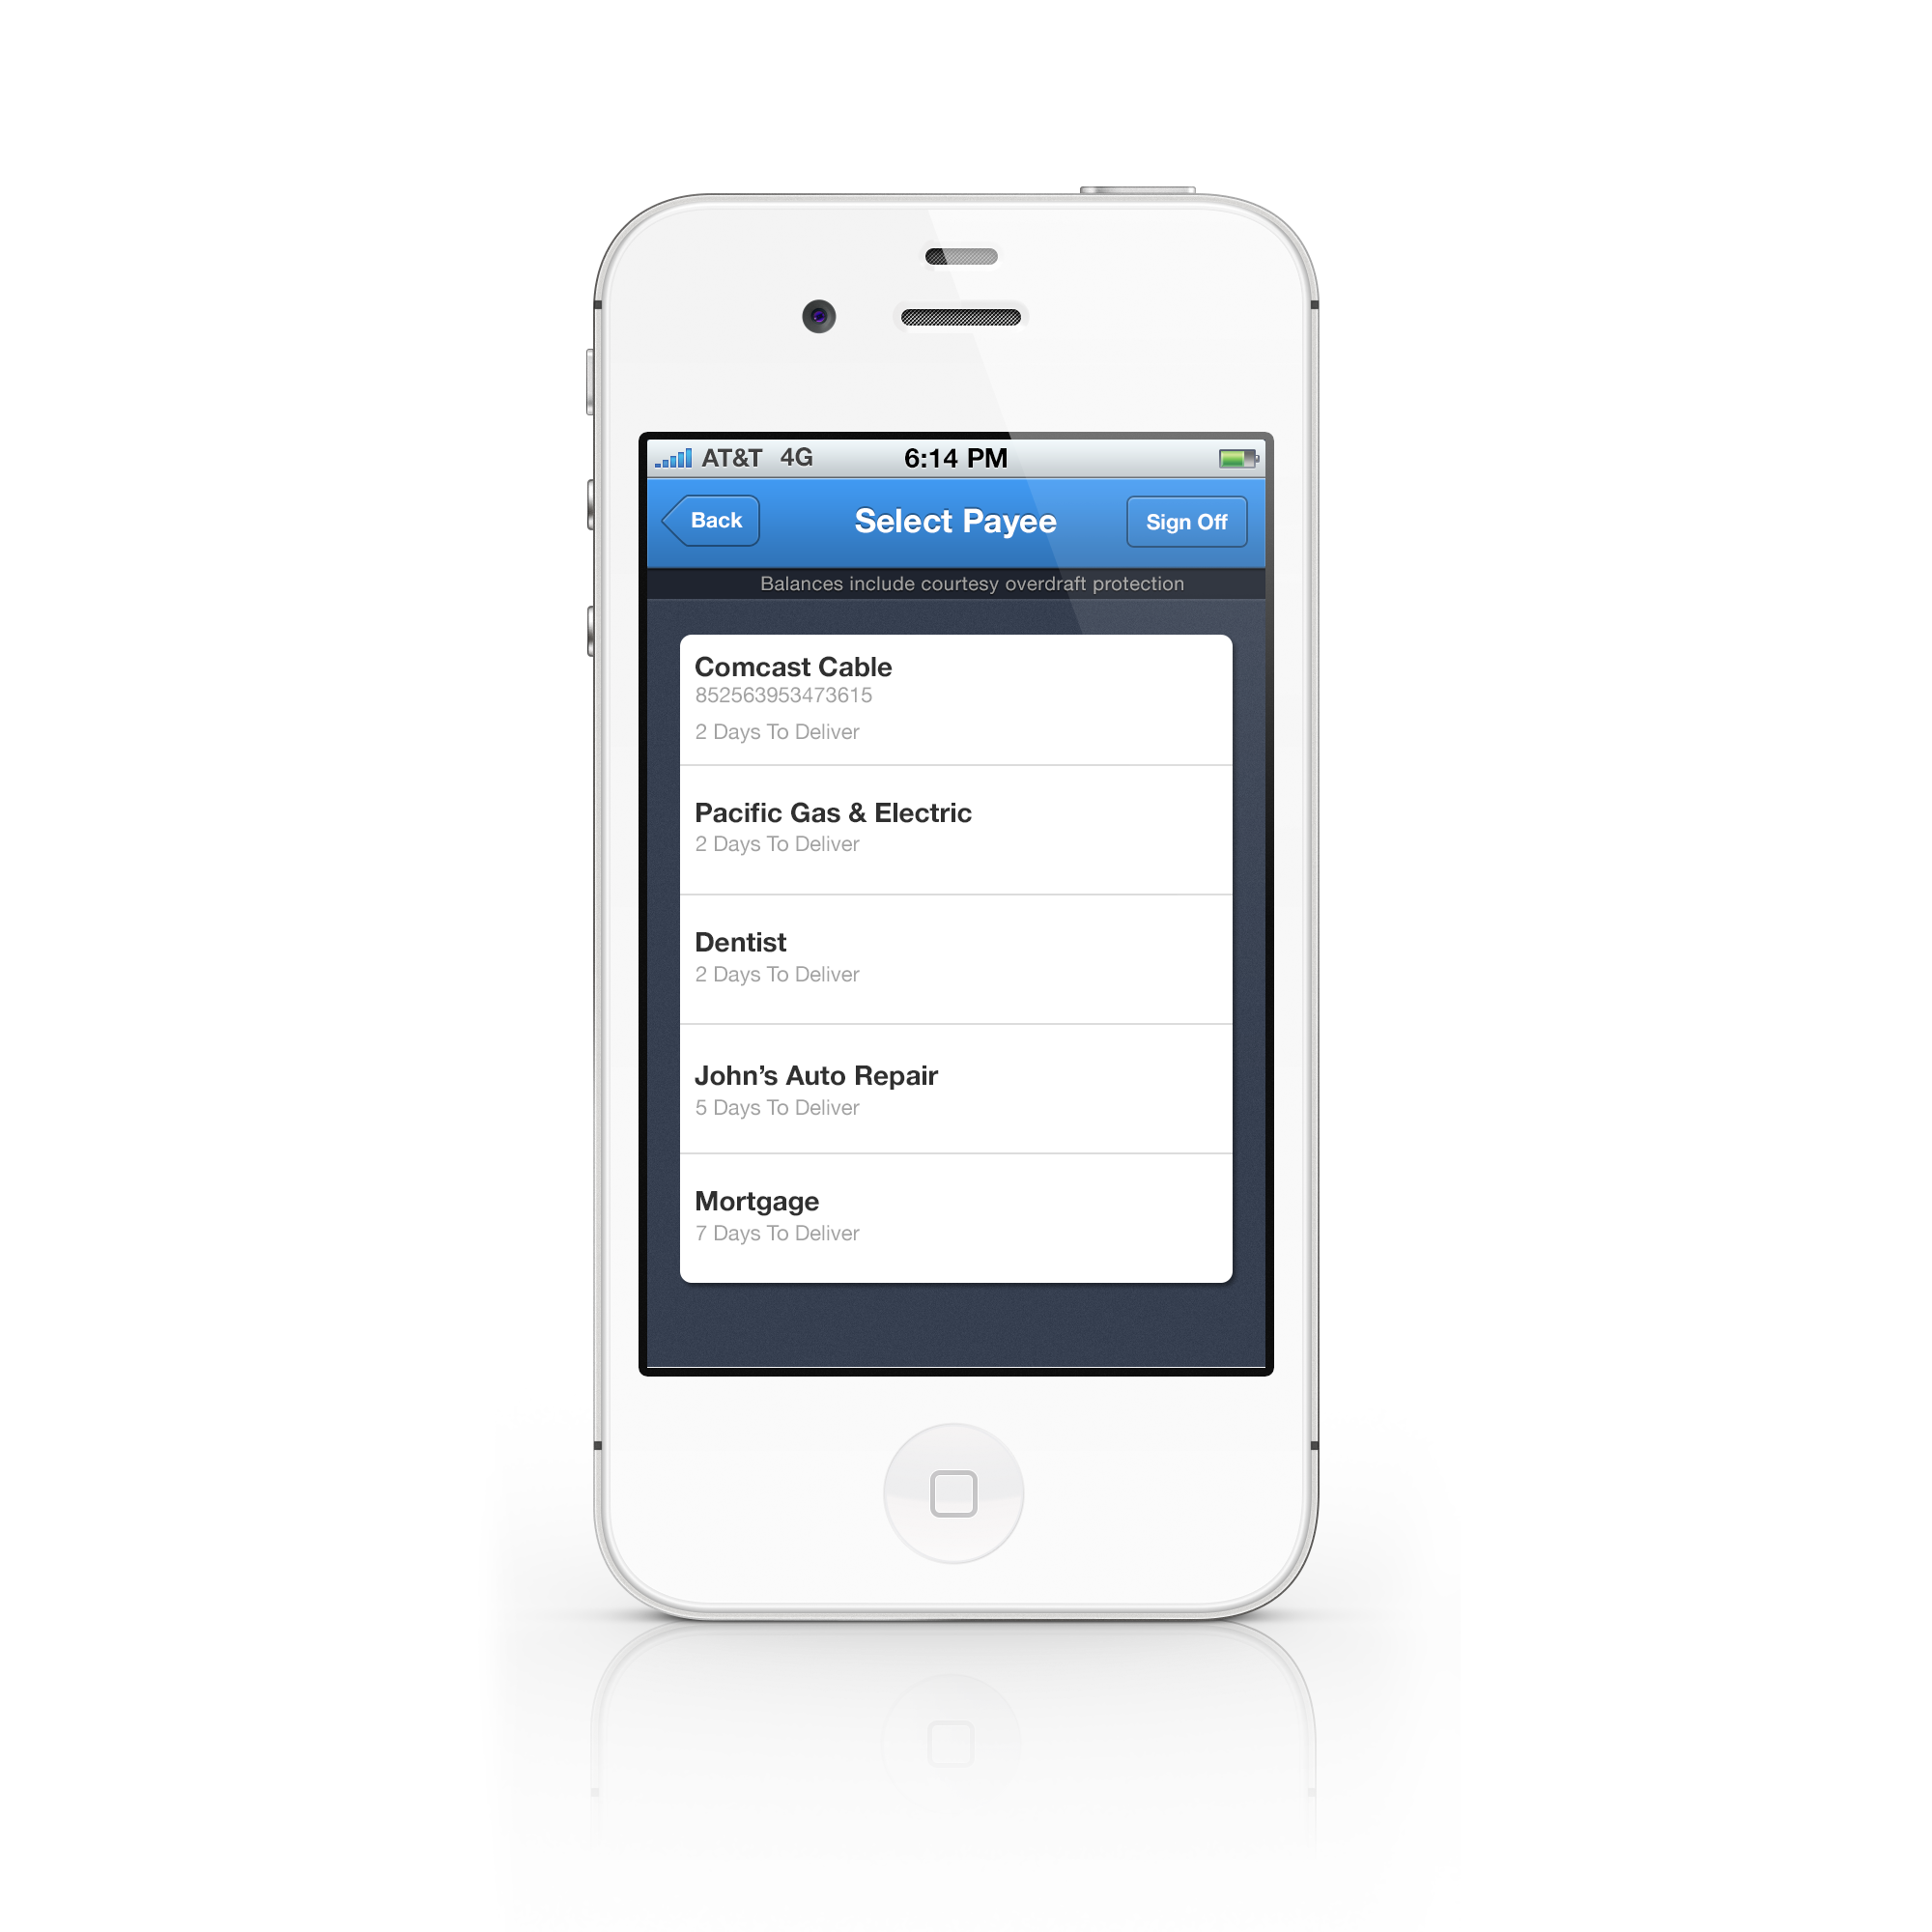 Mobile_Banking_iPhone_4_0013_Layer-Comp-14.png